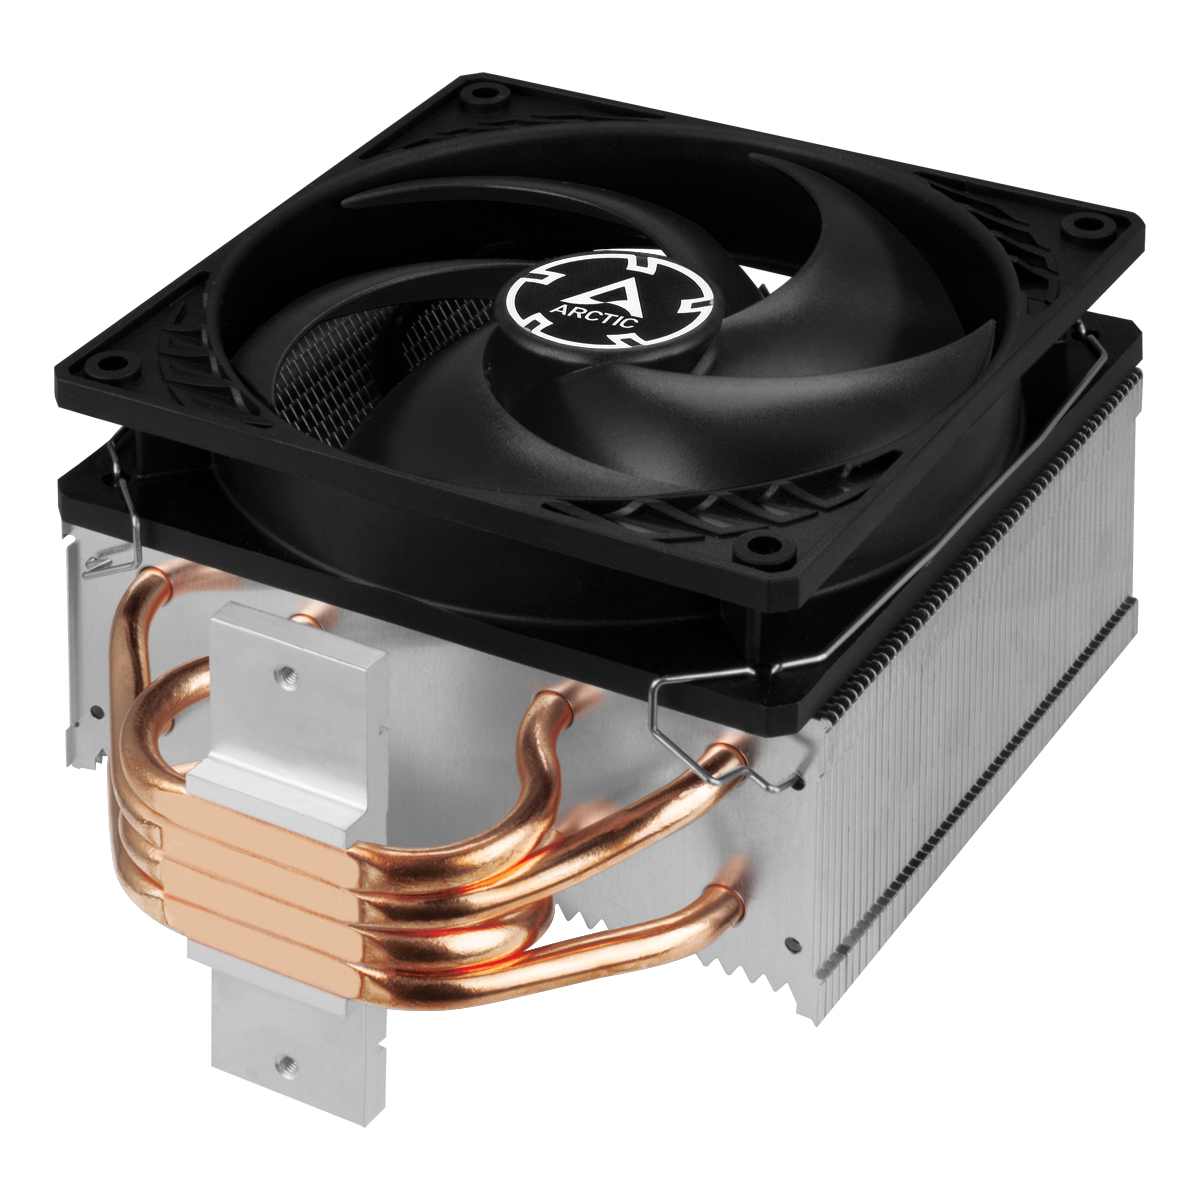 Tower CPU Cooler with 120 mm P-Fan ARCTIC Freezer 34 Detail View Direct Touch Heatpipes